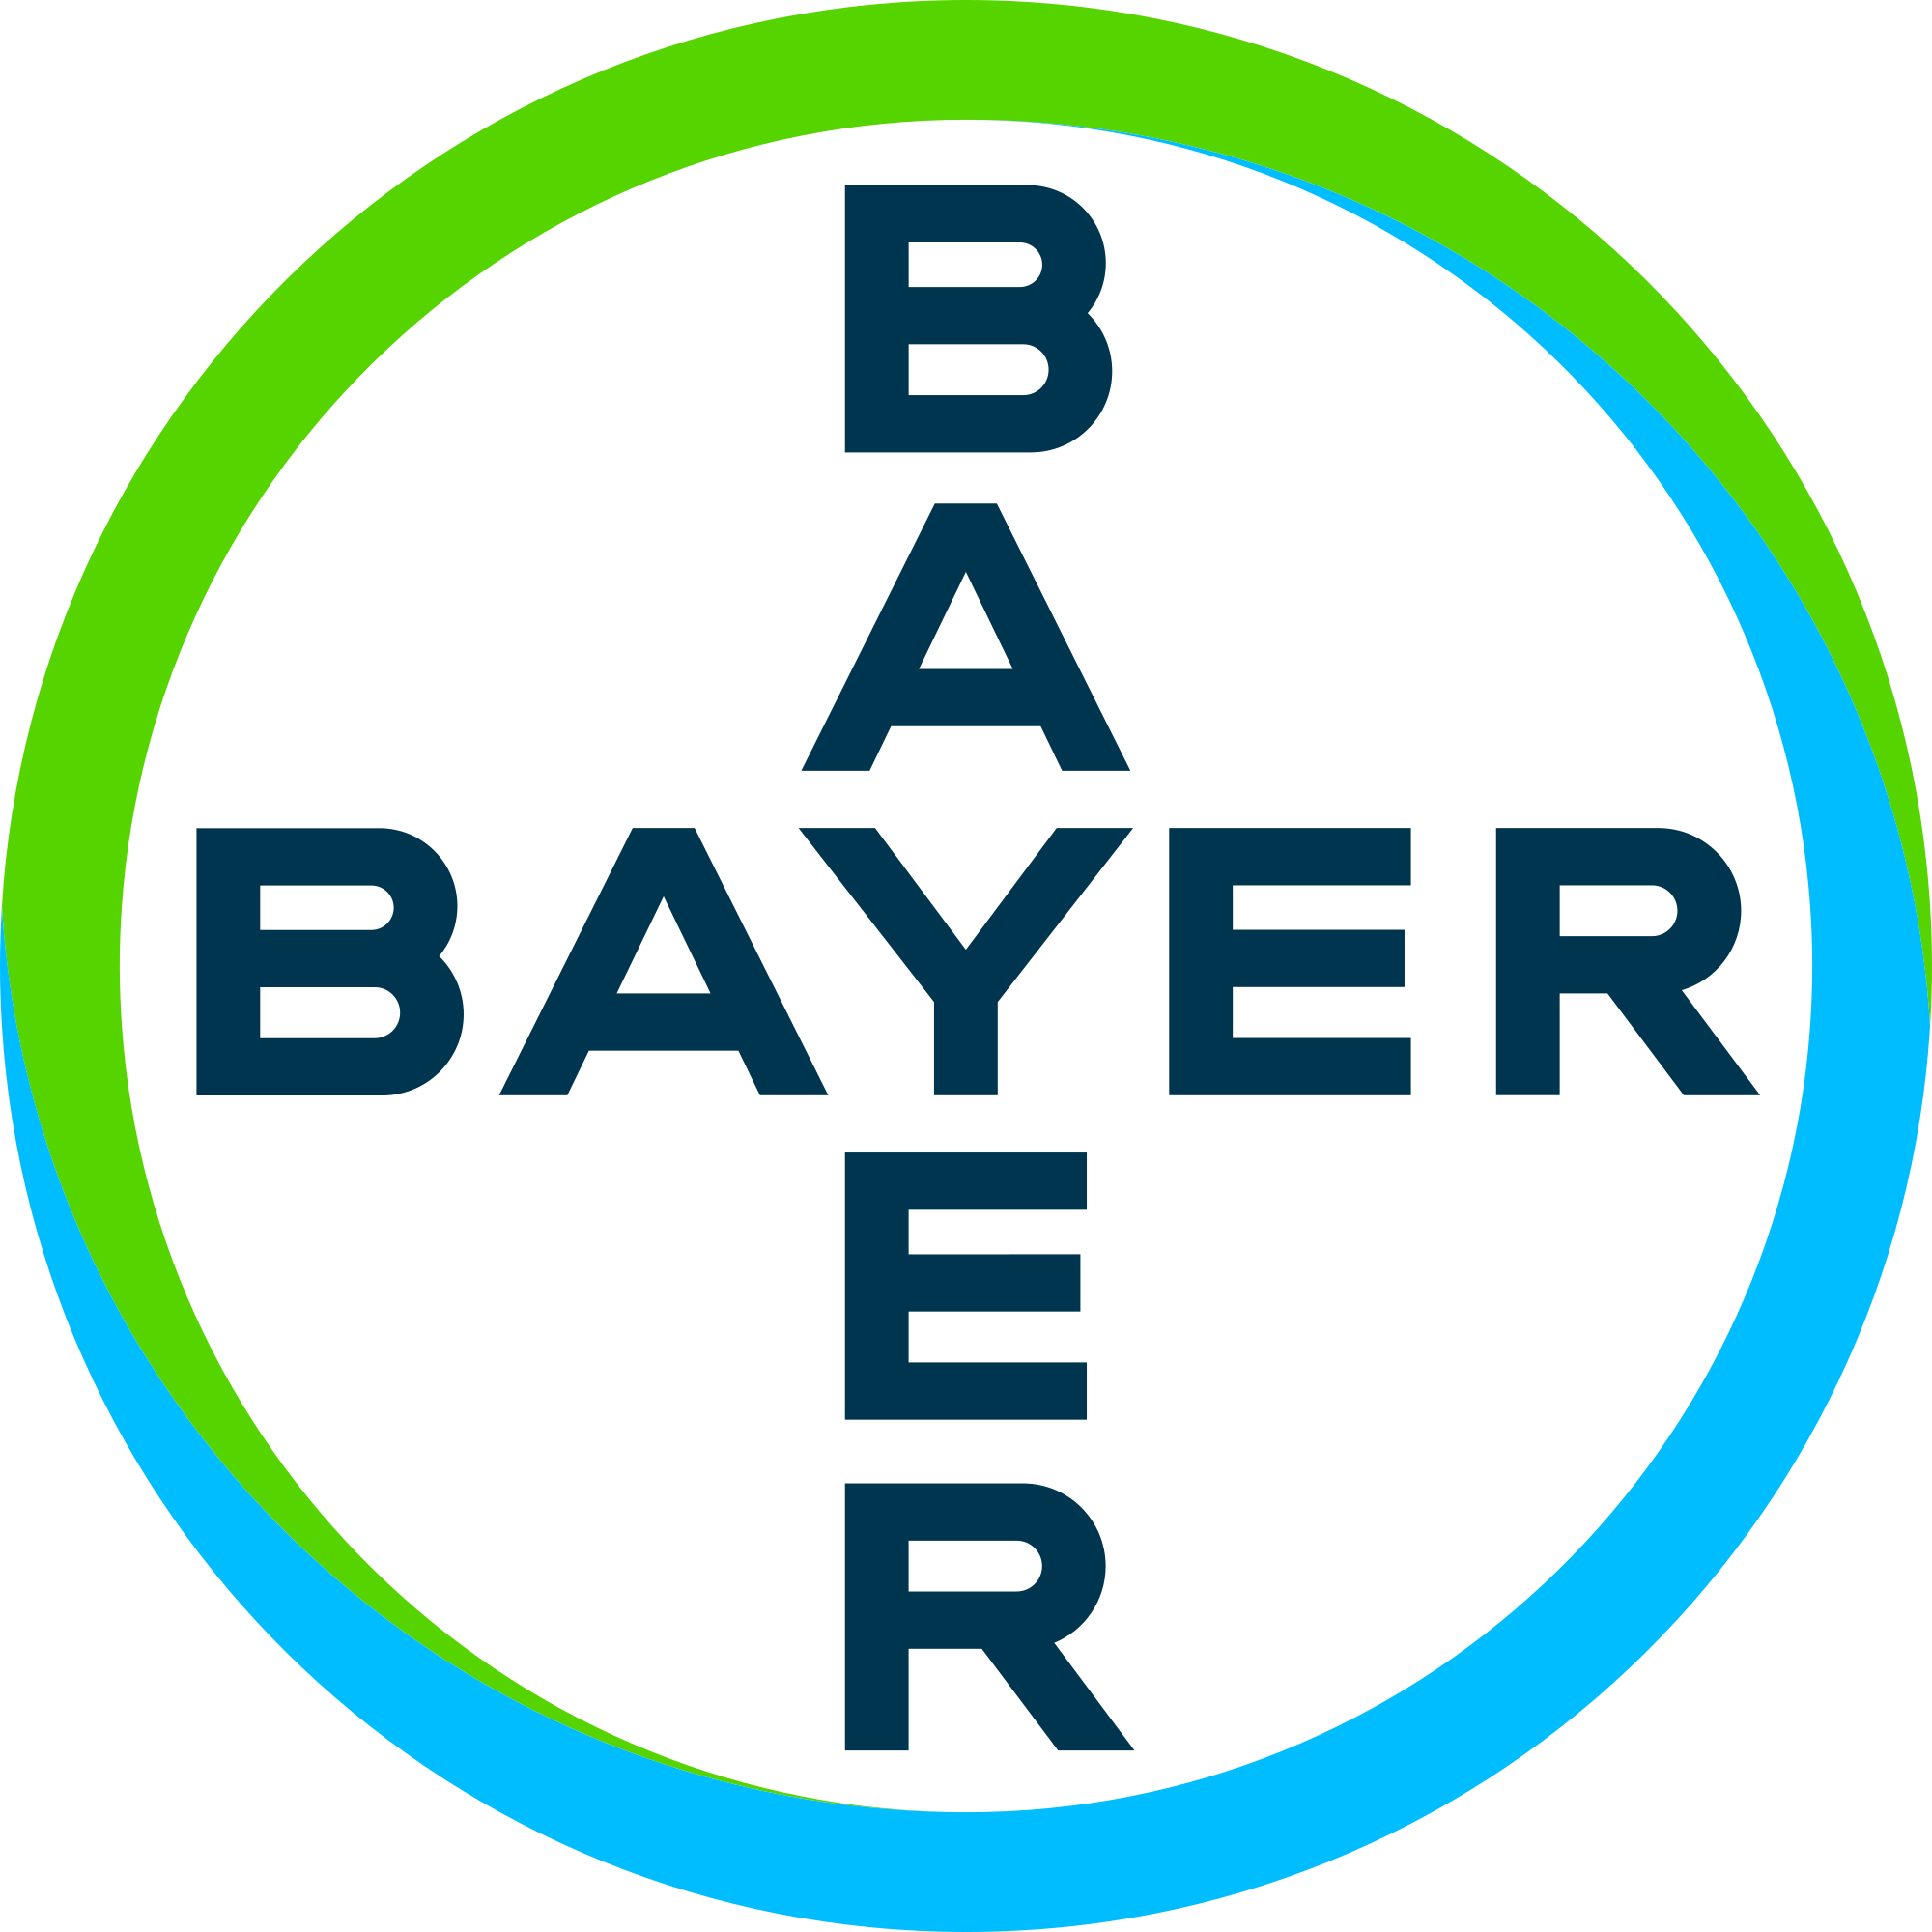 Bayer G4A Voting Evaluation Round